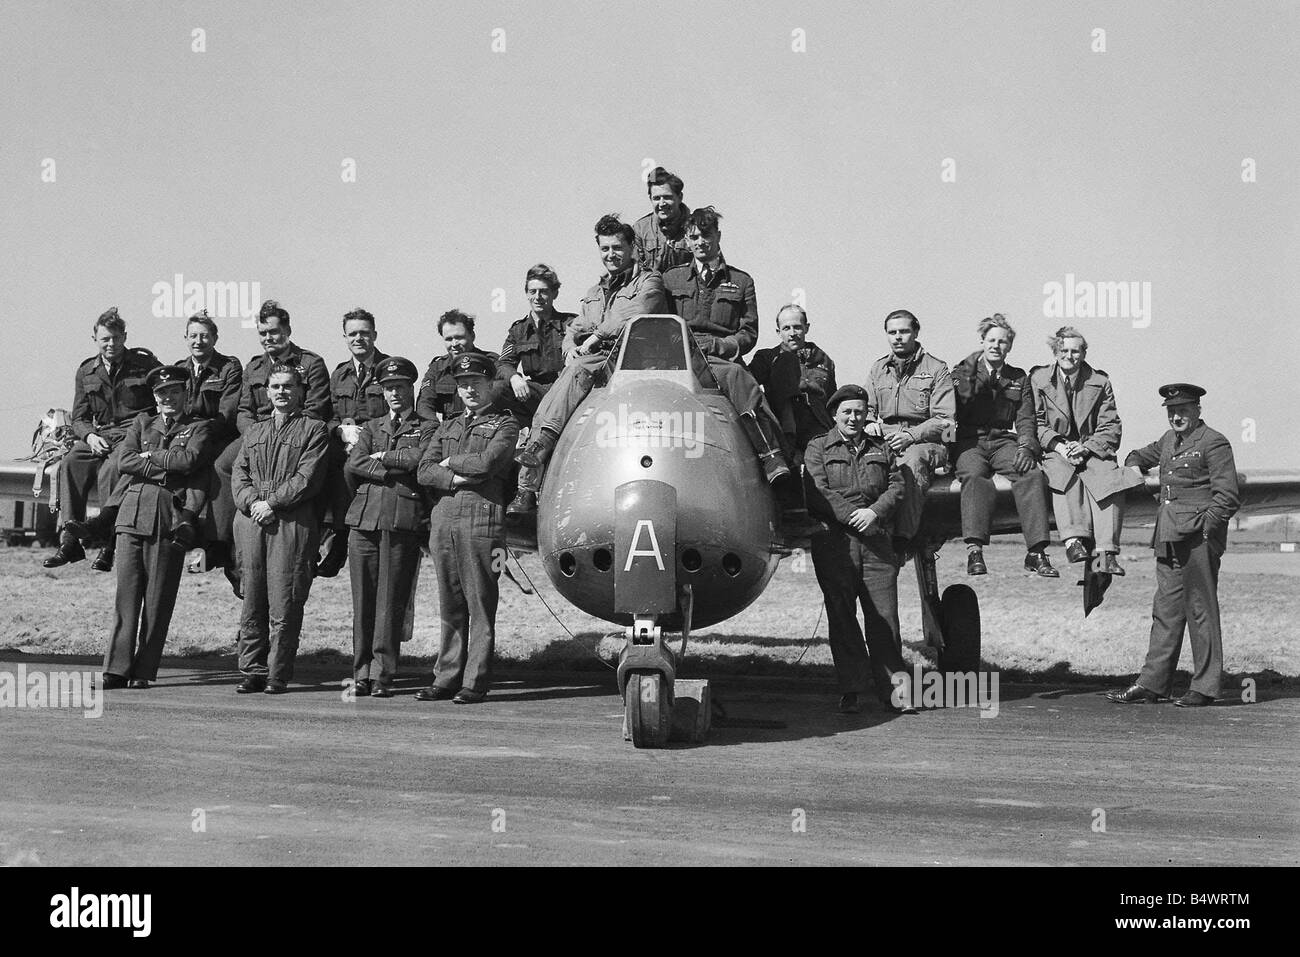 Aircraft Royal Air Force de Havilland Vampire May 1951 A Squadron of pilots and their ground crew and staff stand - Stock Image